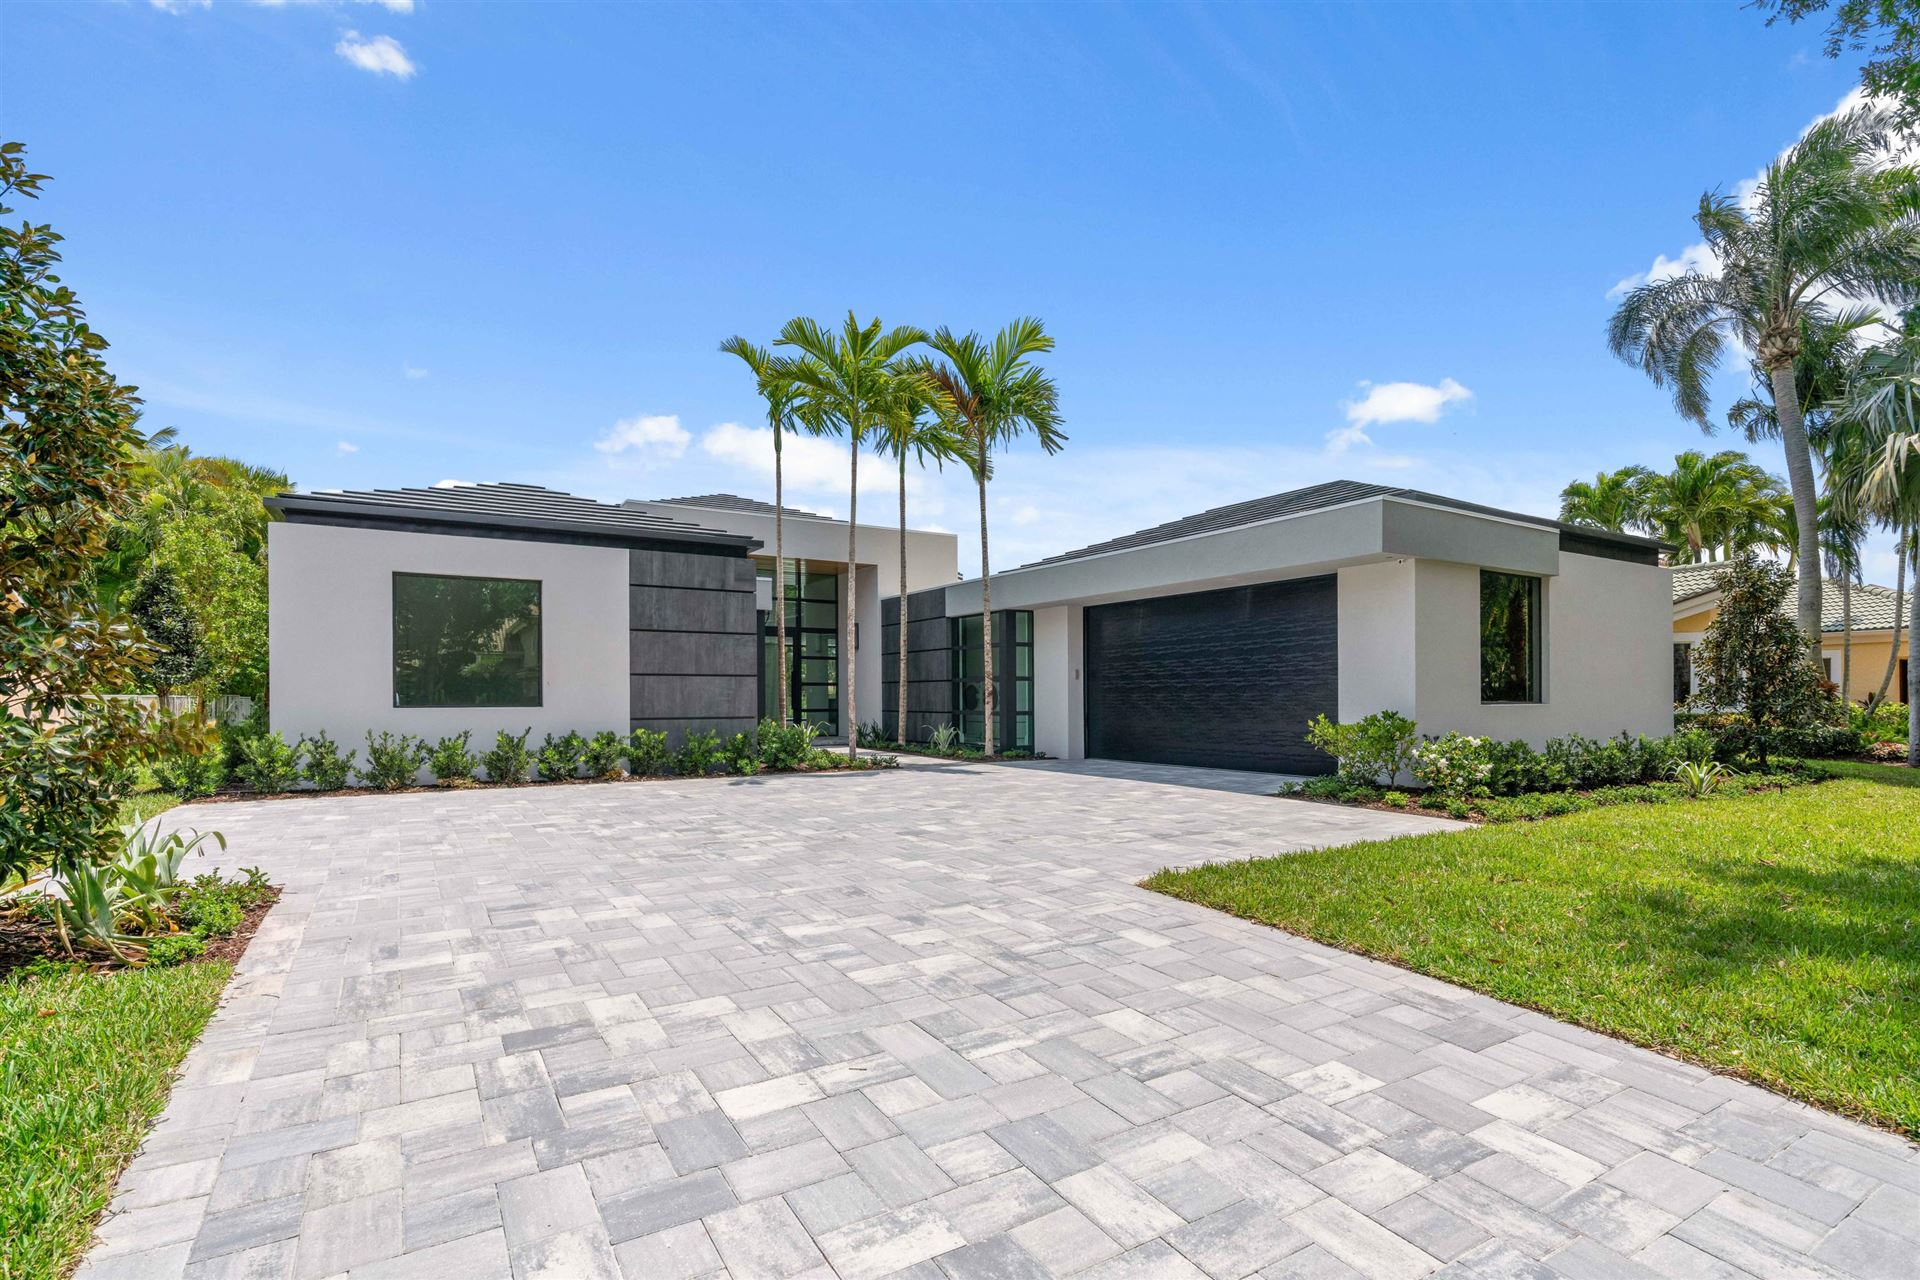 Photo of 115 Victory Drive, Jupiter, FL 33477 (MLS # RX-10671856)